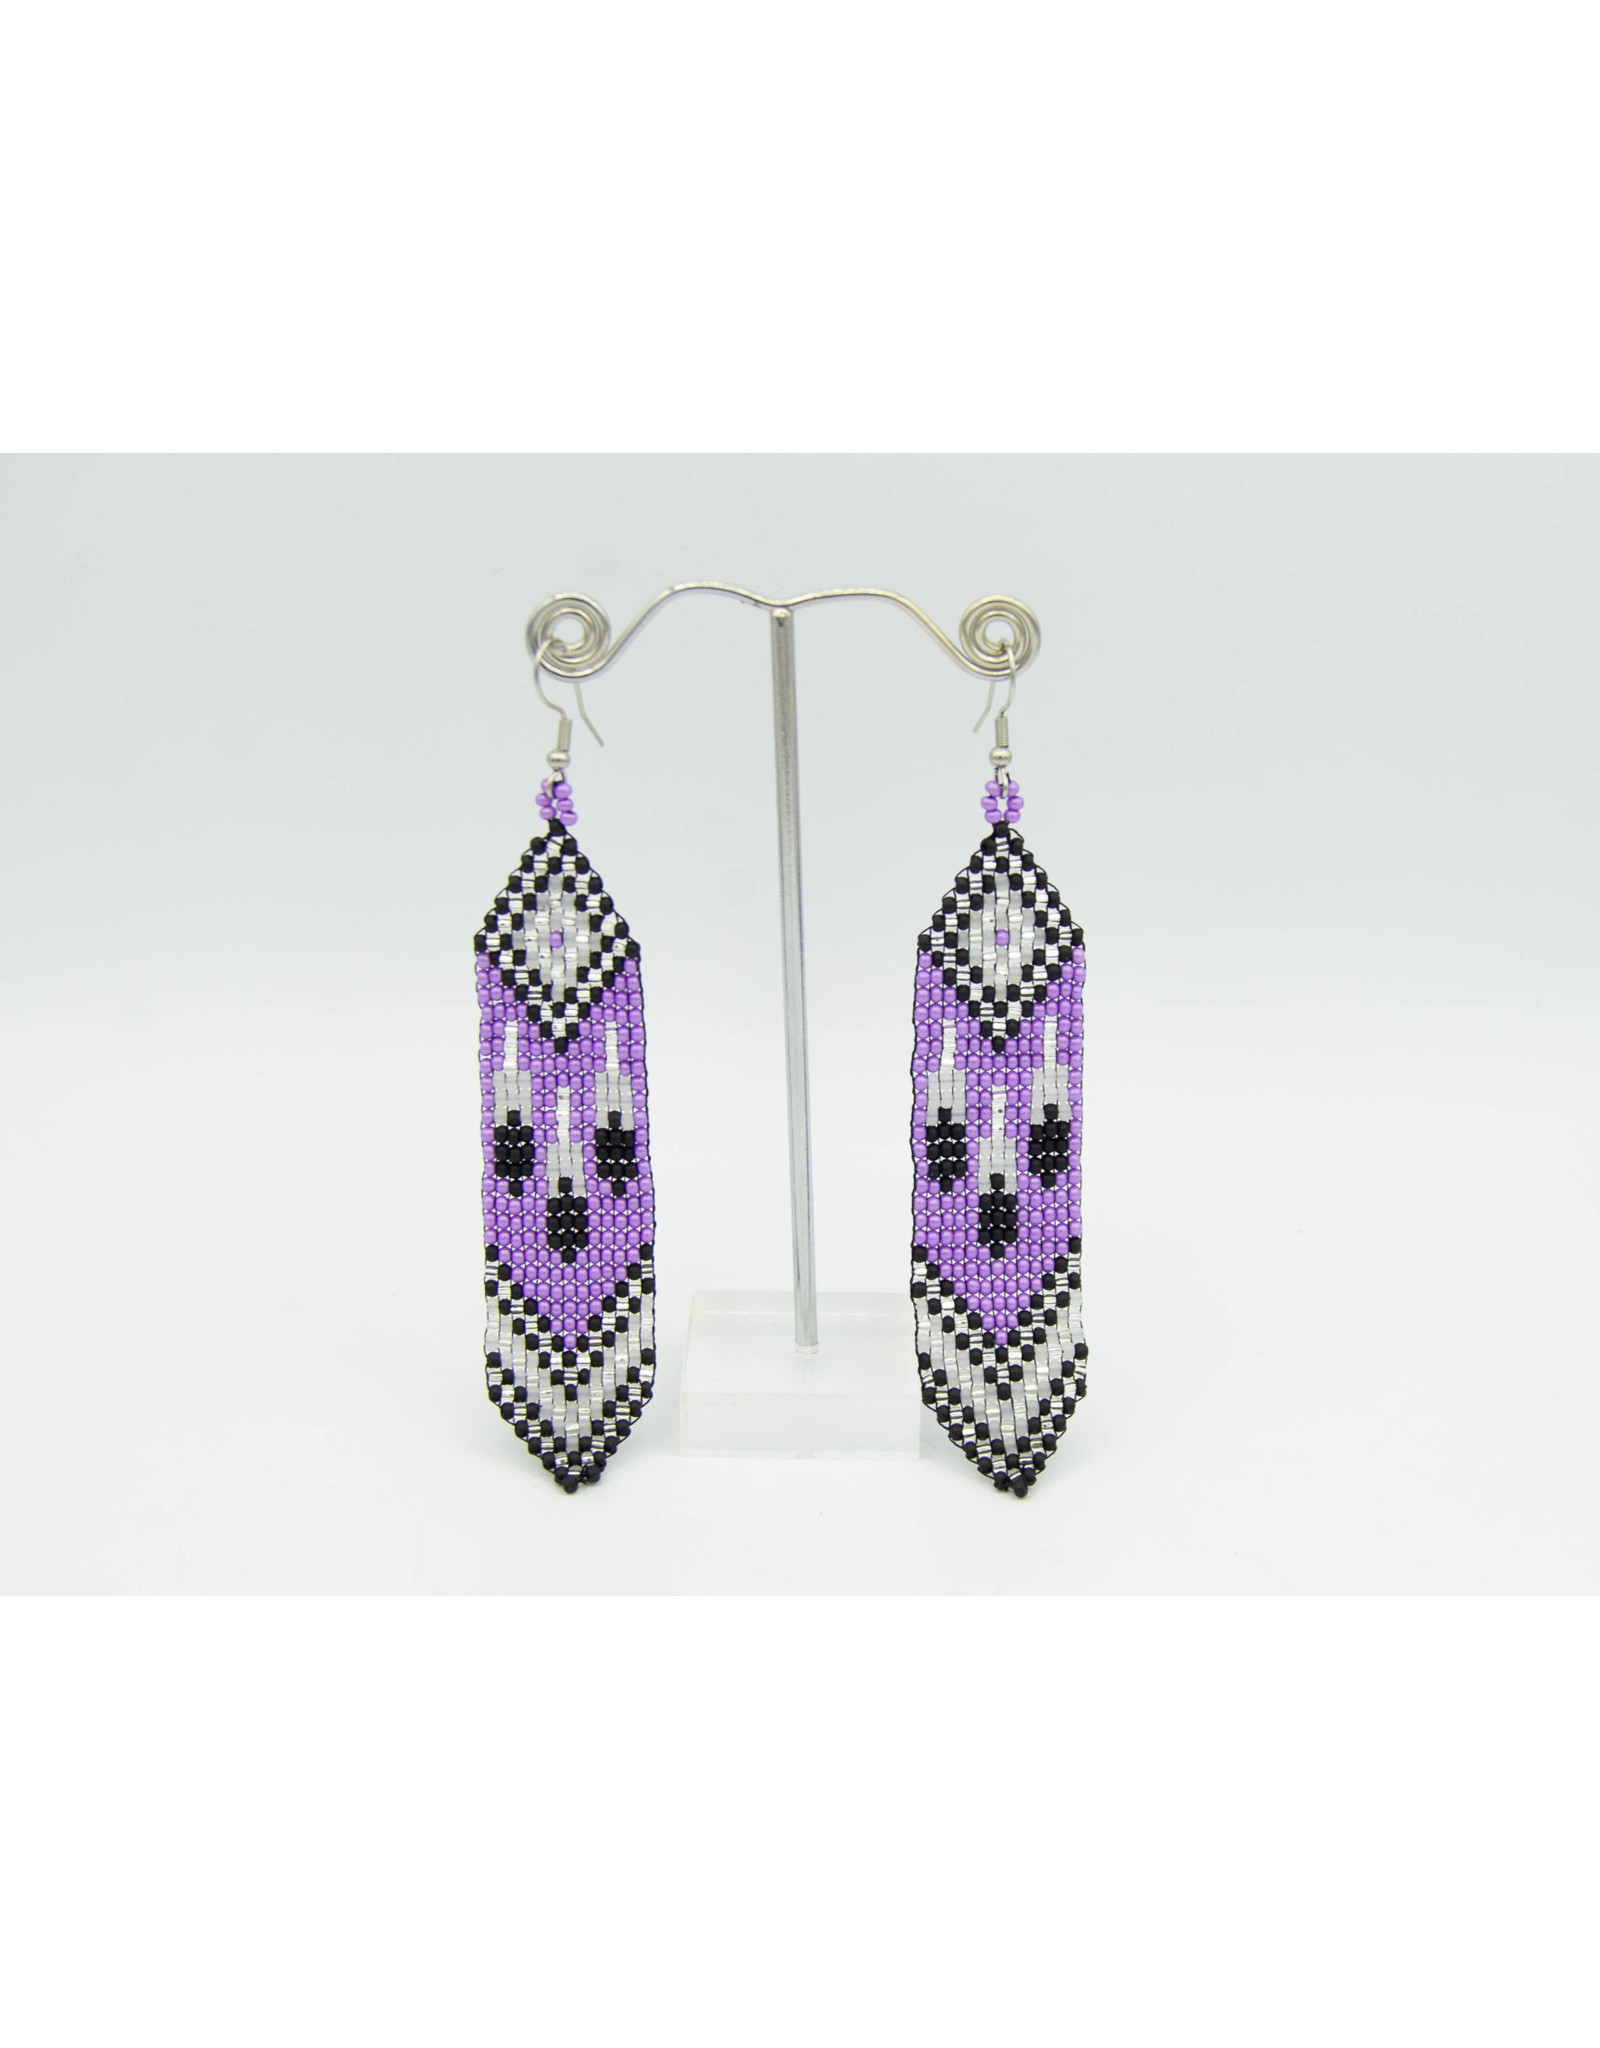 Native Artisan Earrings